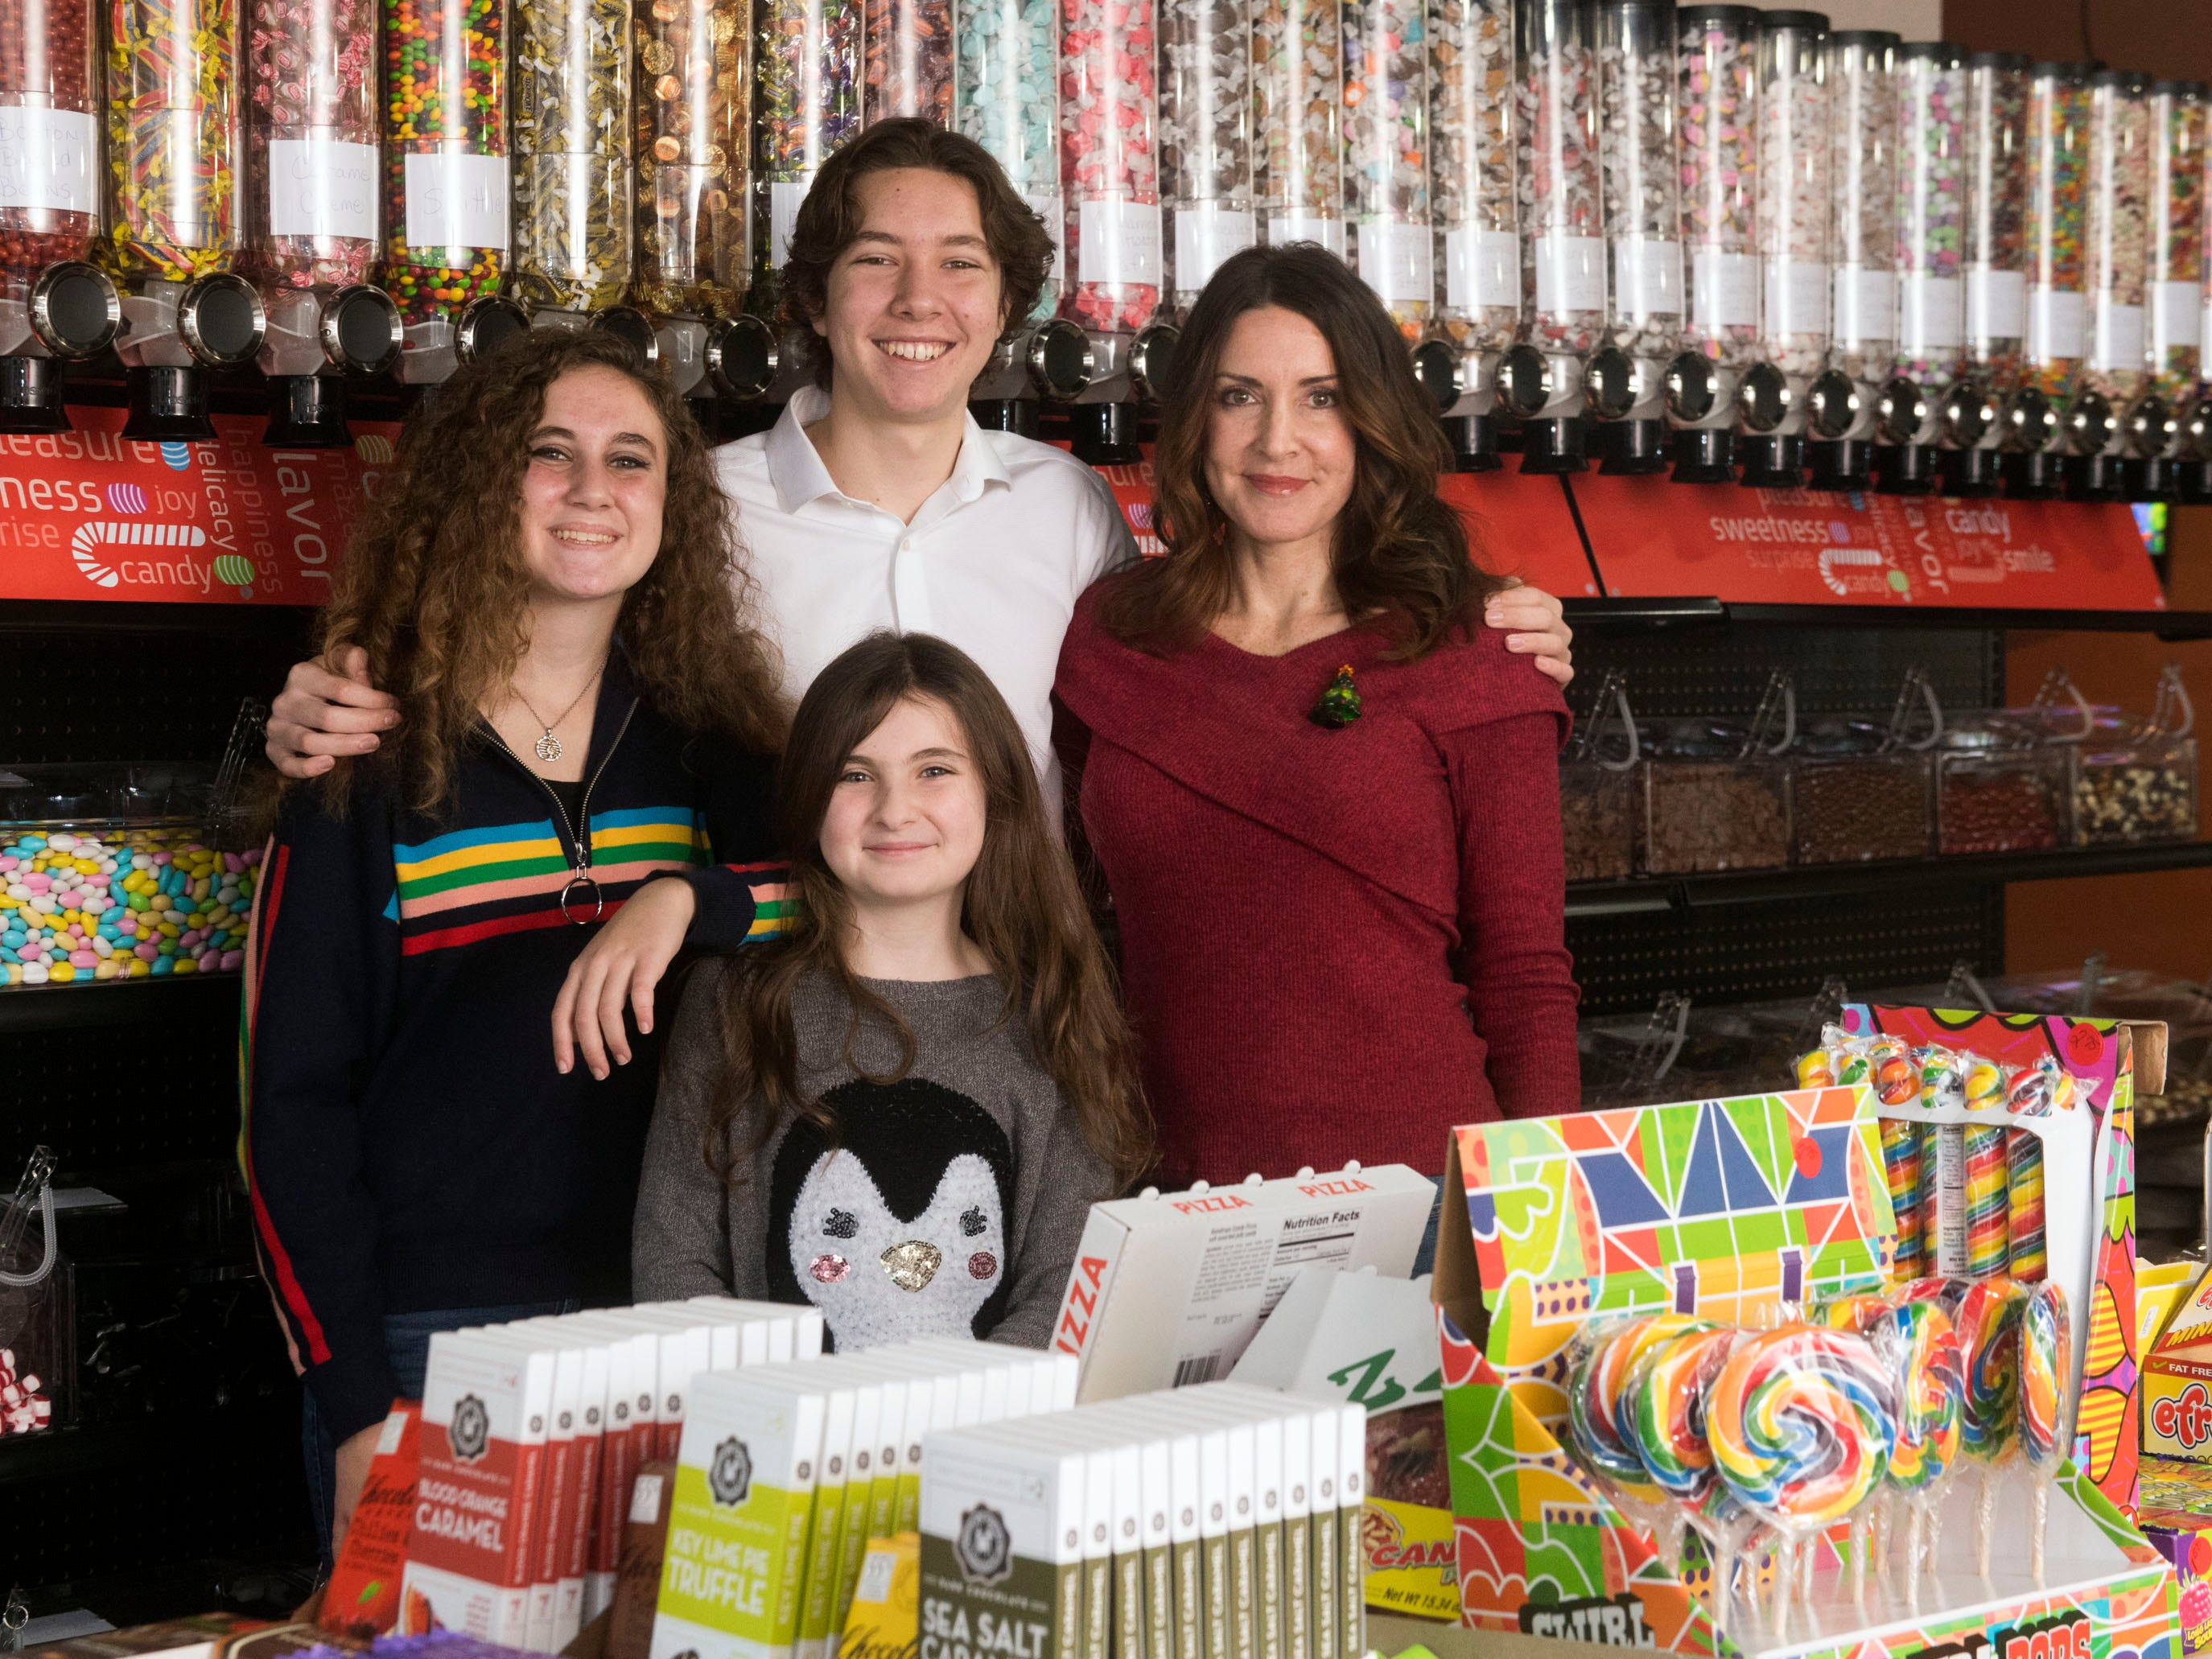 Lisa Henderson, right, and her children, Dov, 17, Ela, 14, and Abby, 9, spend time at their new candy shop, Gimme Sugar, at Homberg Place on Friday, Dec. 21, 2018.